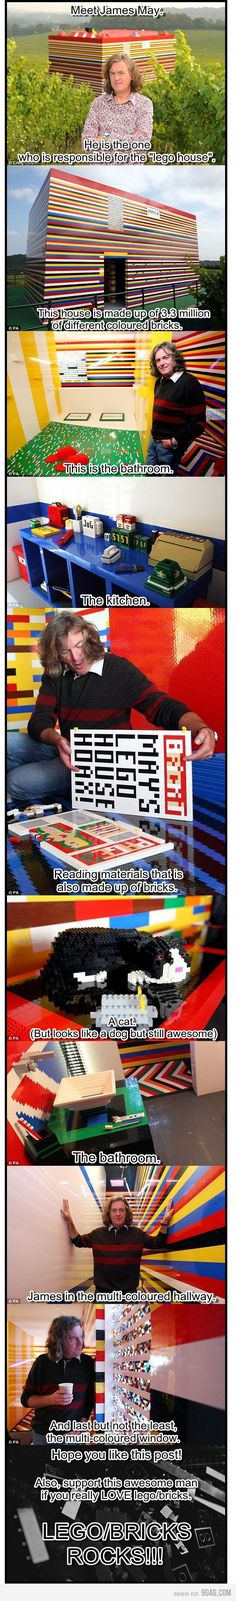 LEGO House  James May